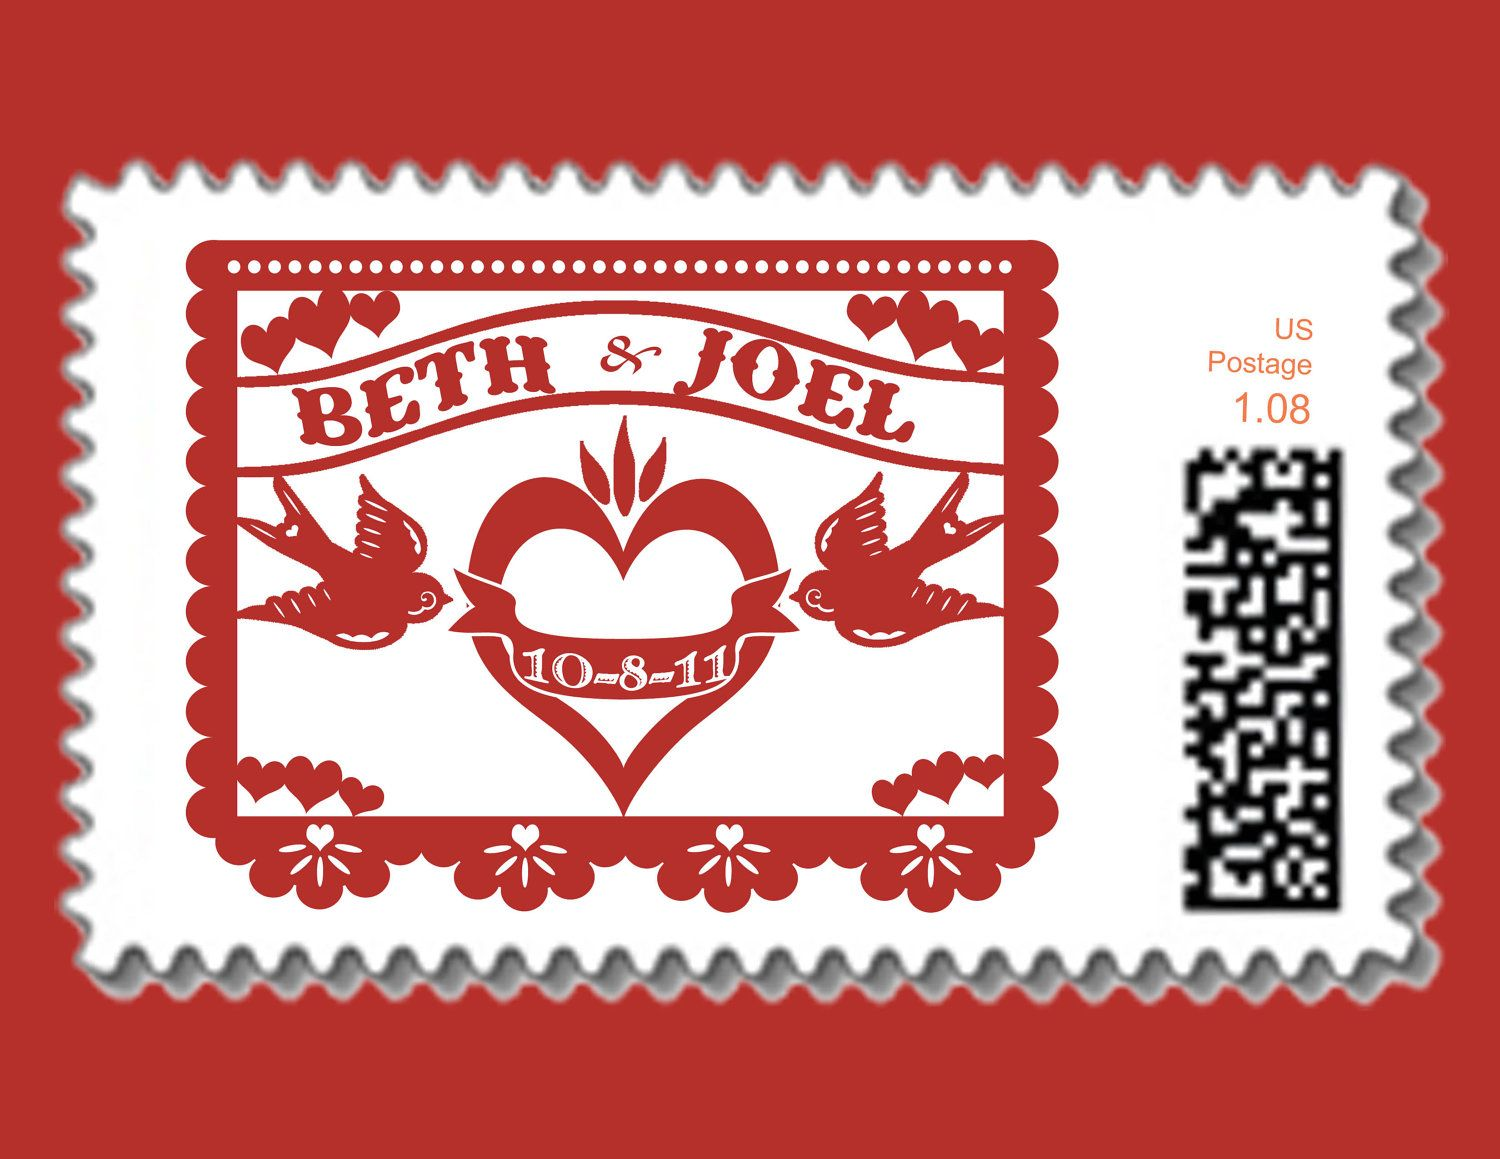 Papel Picado Love birds logo for postage stamp - Wedding, Engagement ...